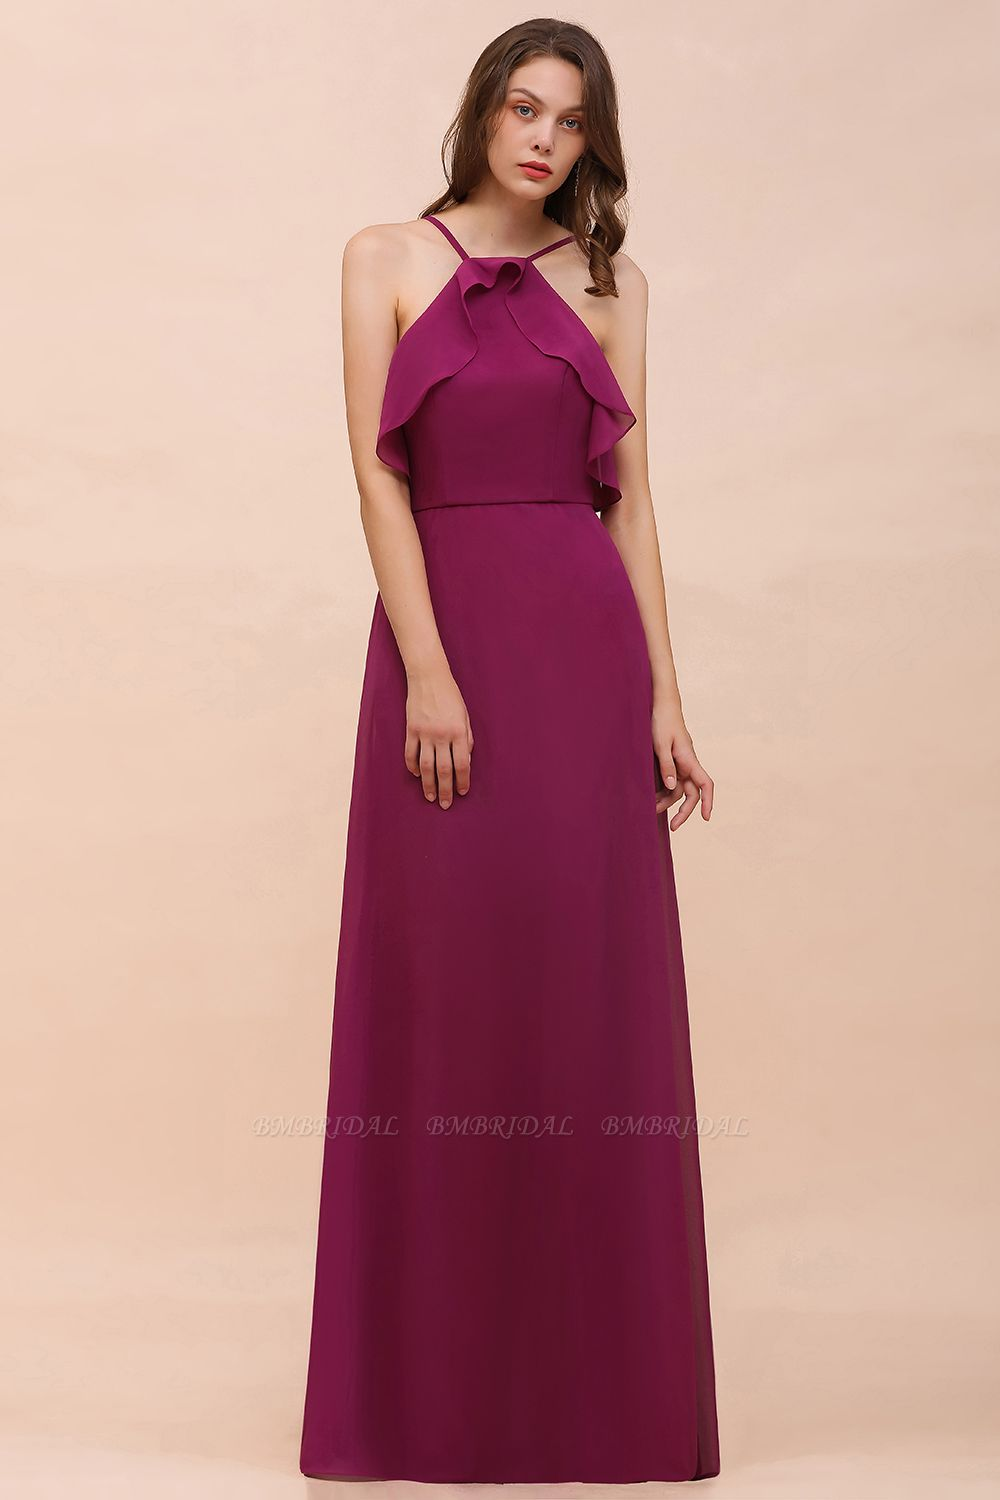 Stylish Spaghetti Straps Mulberry Chiffon Bridesmaid Dress with Ruffles